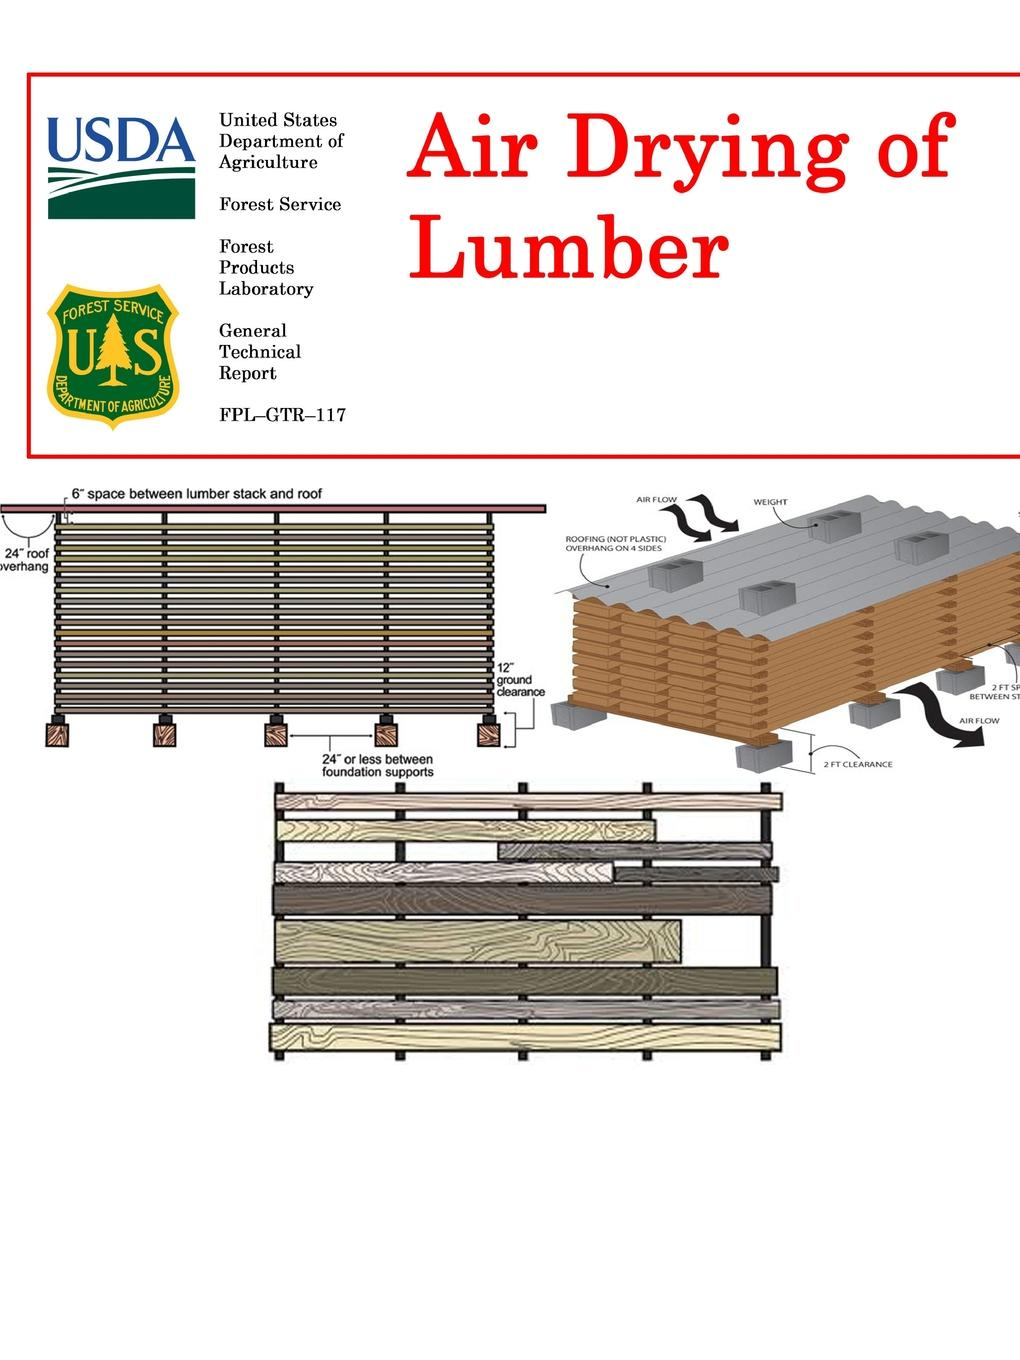 United States Department of Agriculture Air Drying of Lumber allen quincy the outdoor chums in the big woods or rival hunters of lumber run